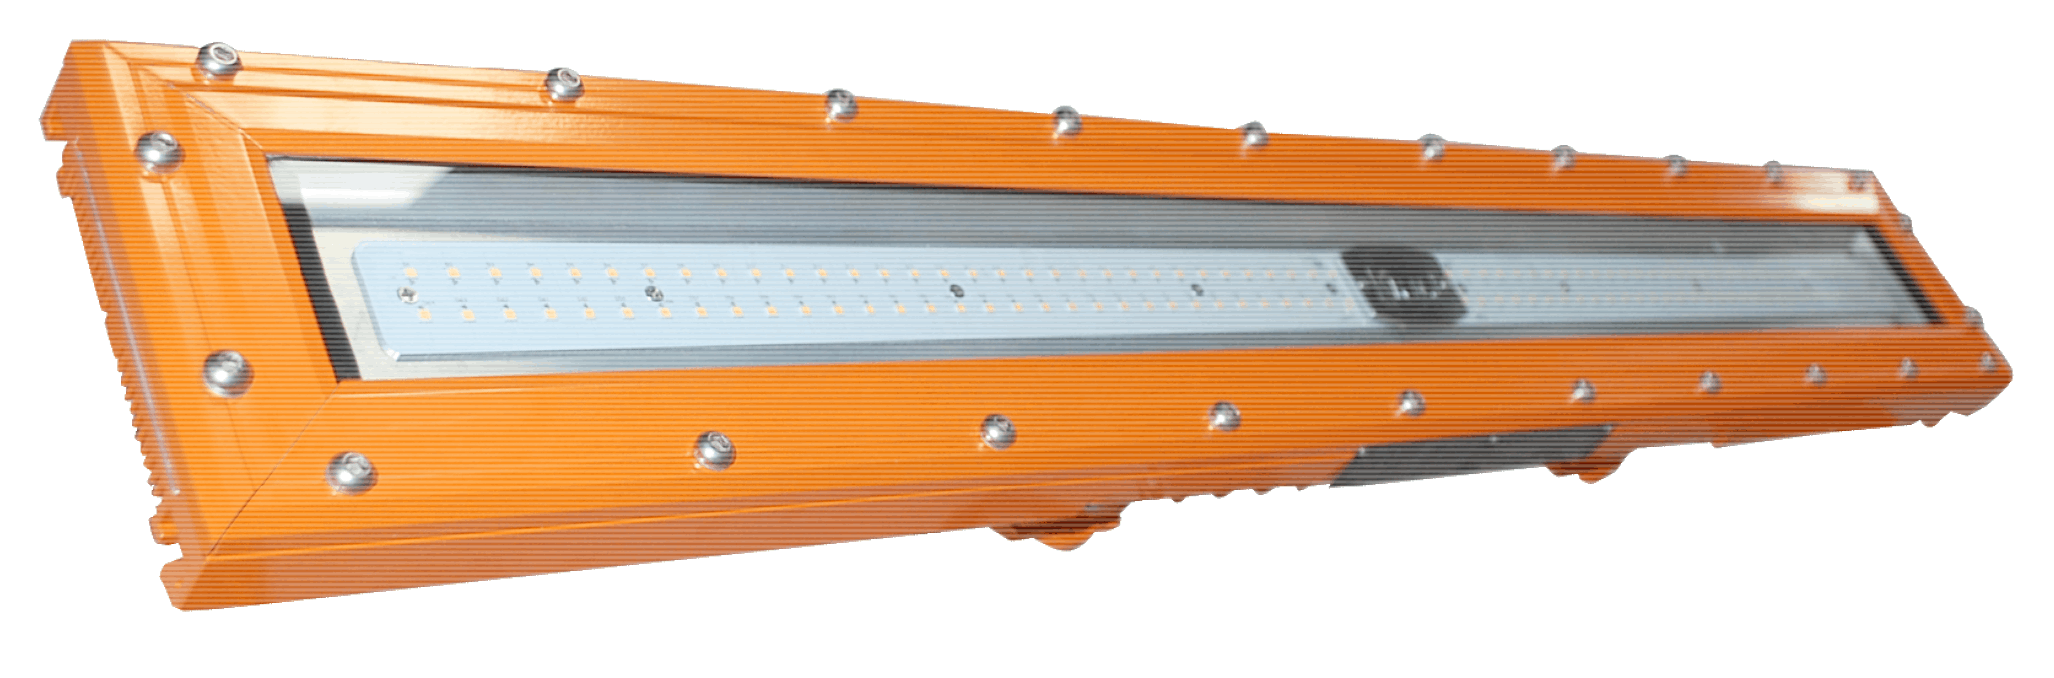 Ex-KSF481200 ATEX LED Lighting Swordfish 48W